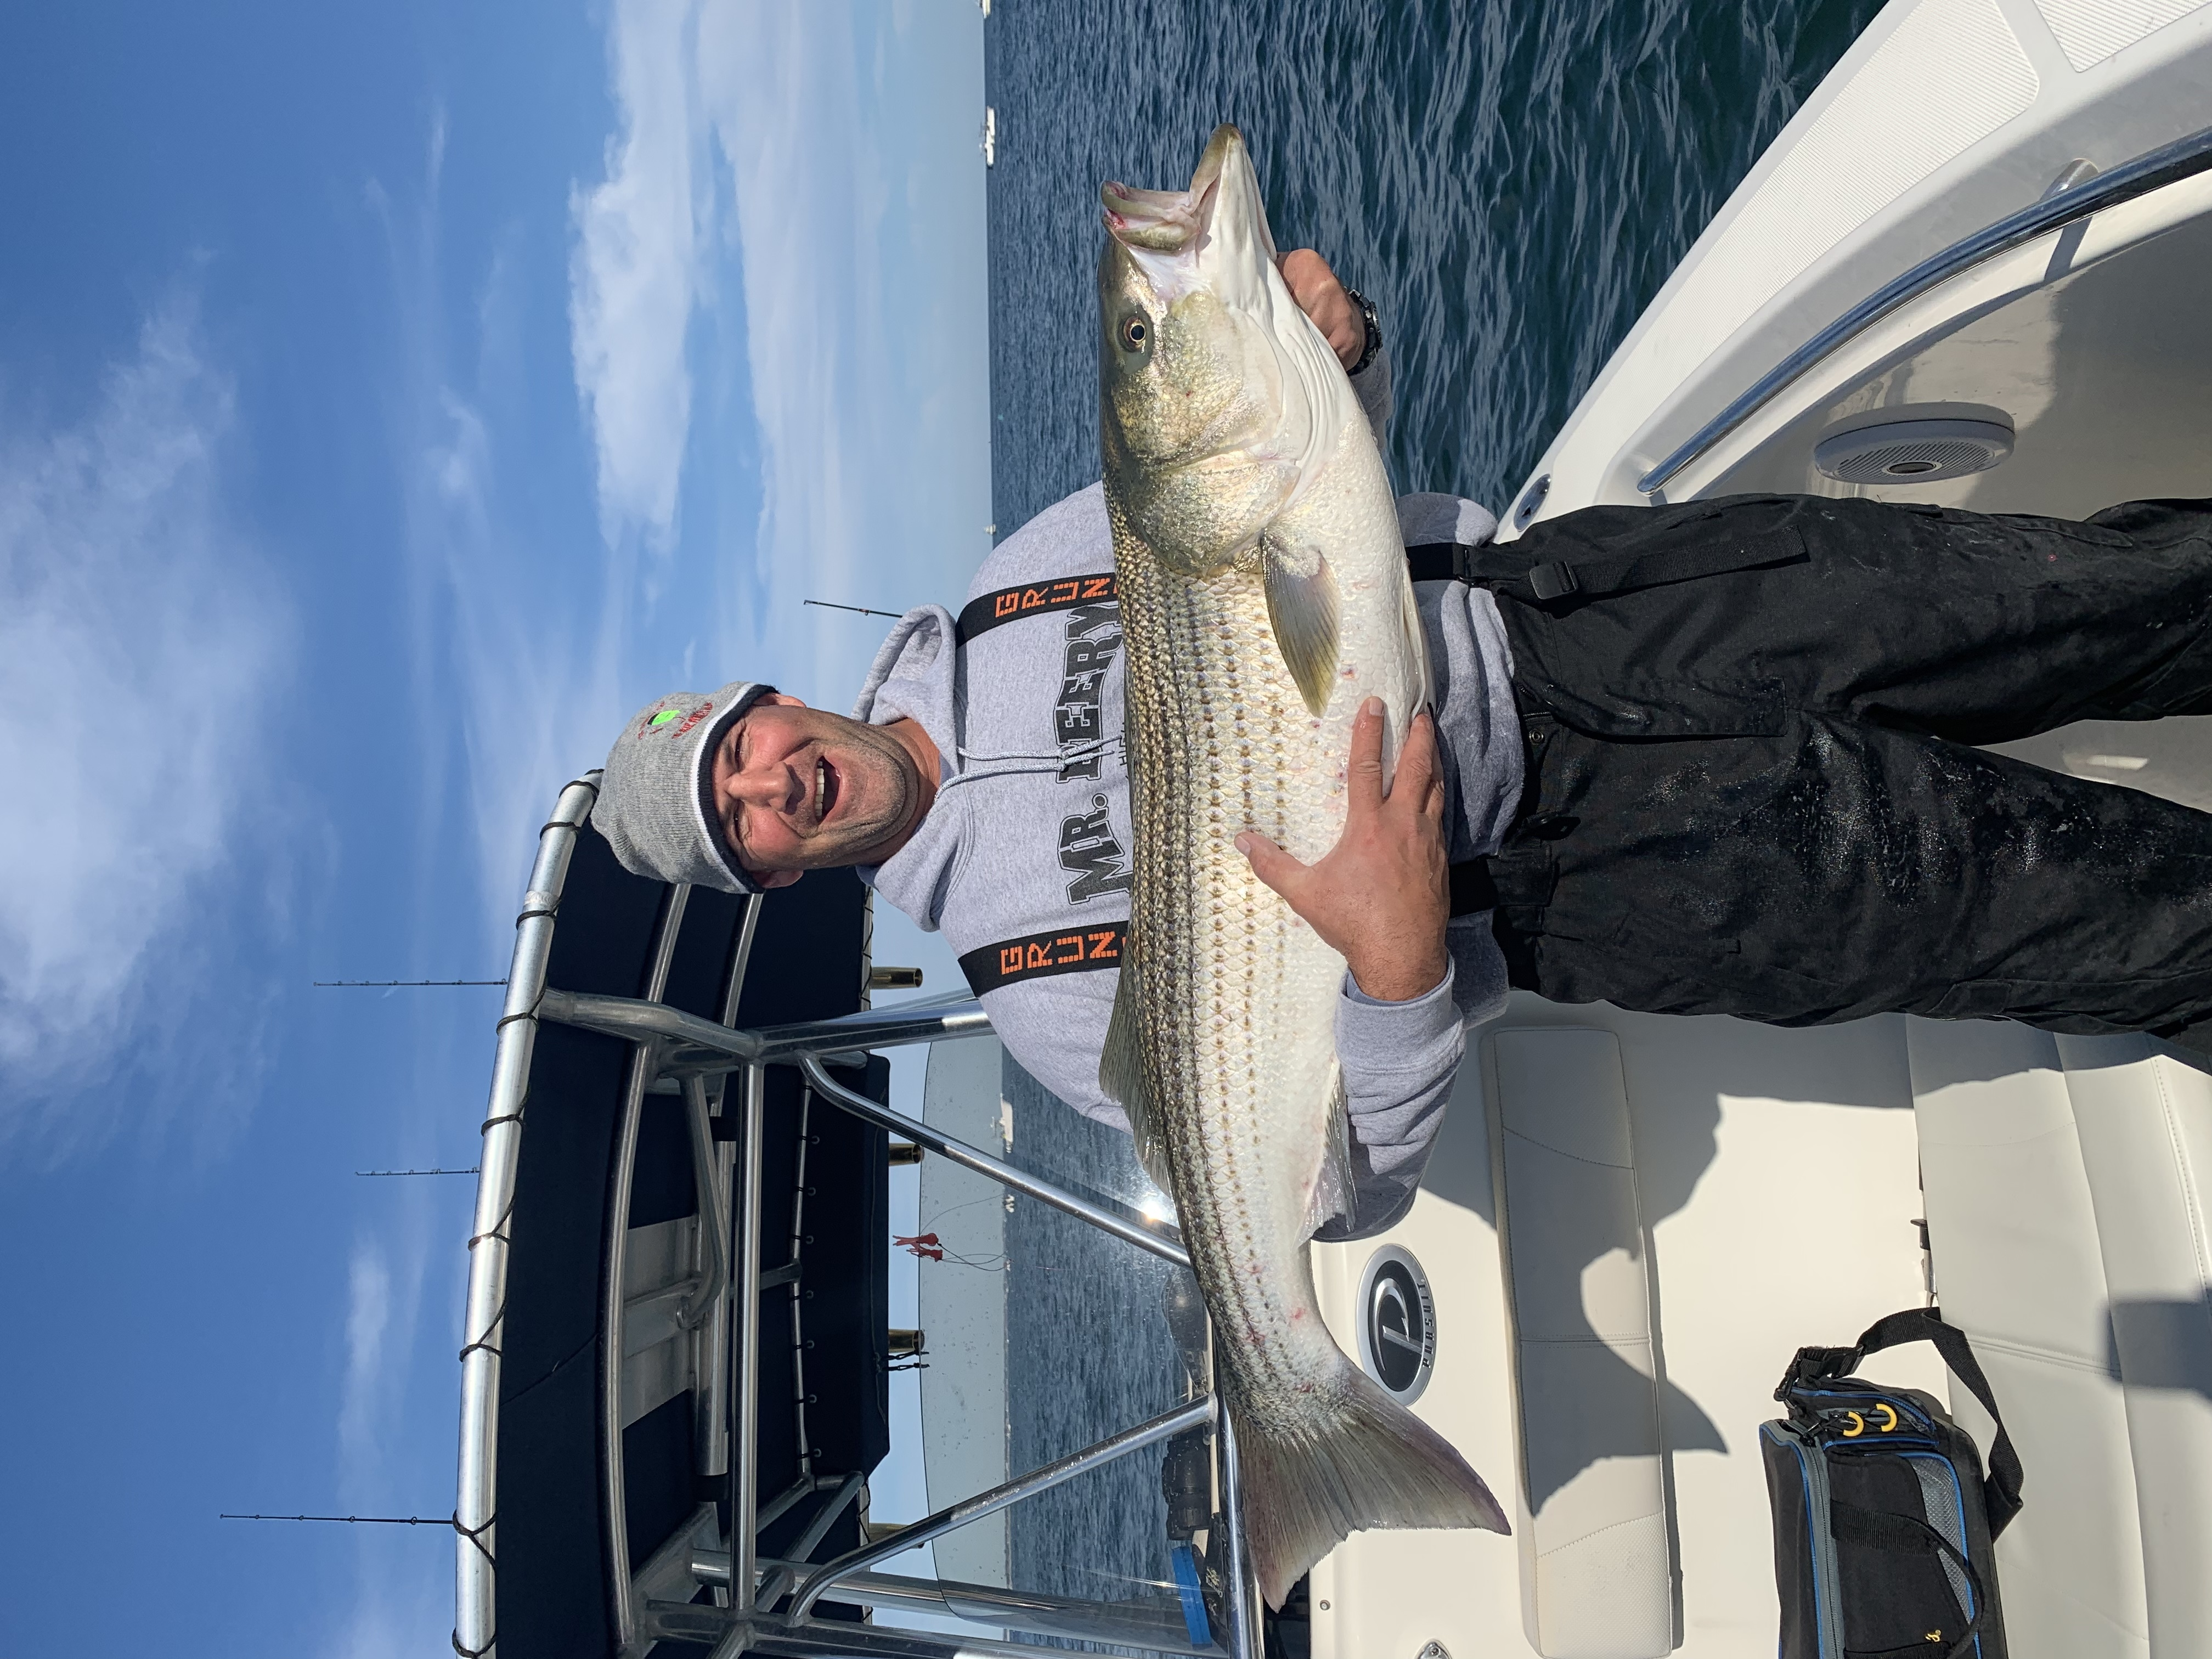 Chris Capalbo and a lot of anglers stumbled onto red-hot fishing for big striped bass outside Shinnecock Inlet over the weekend.